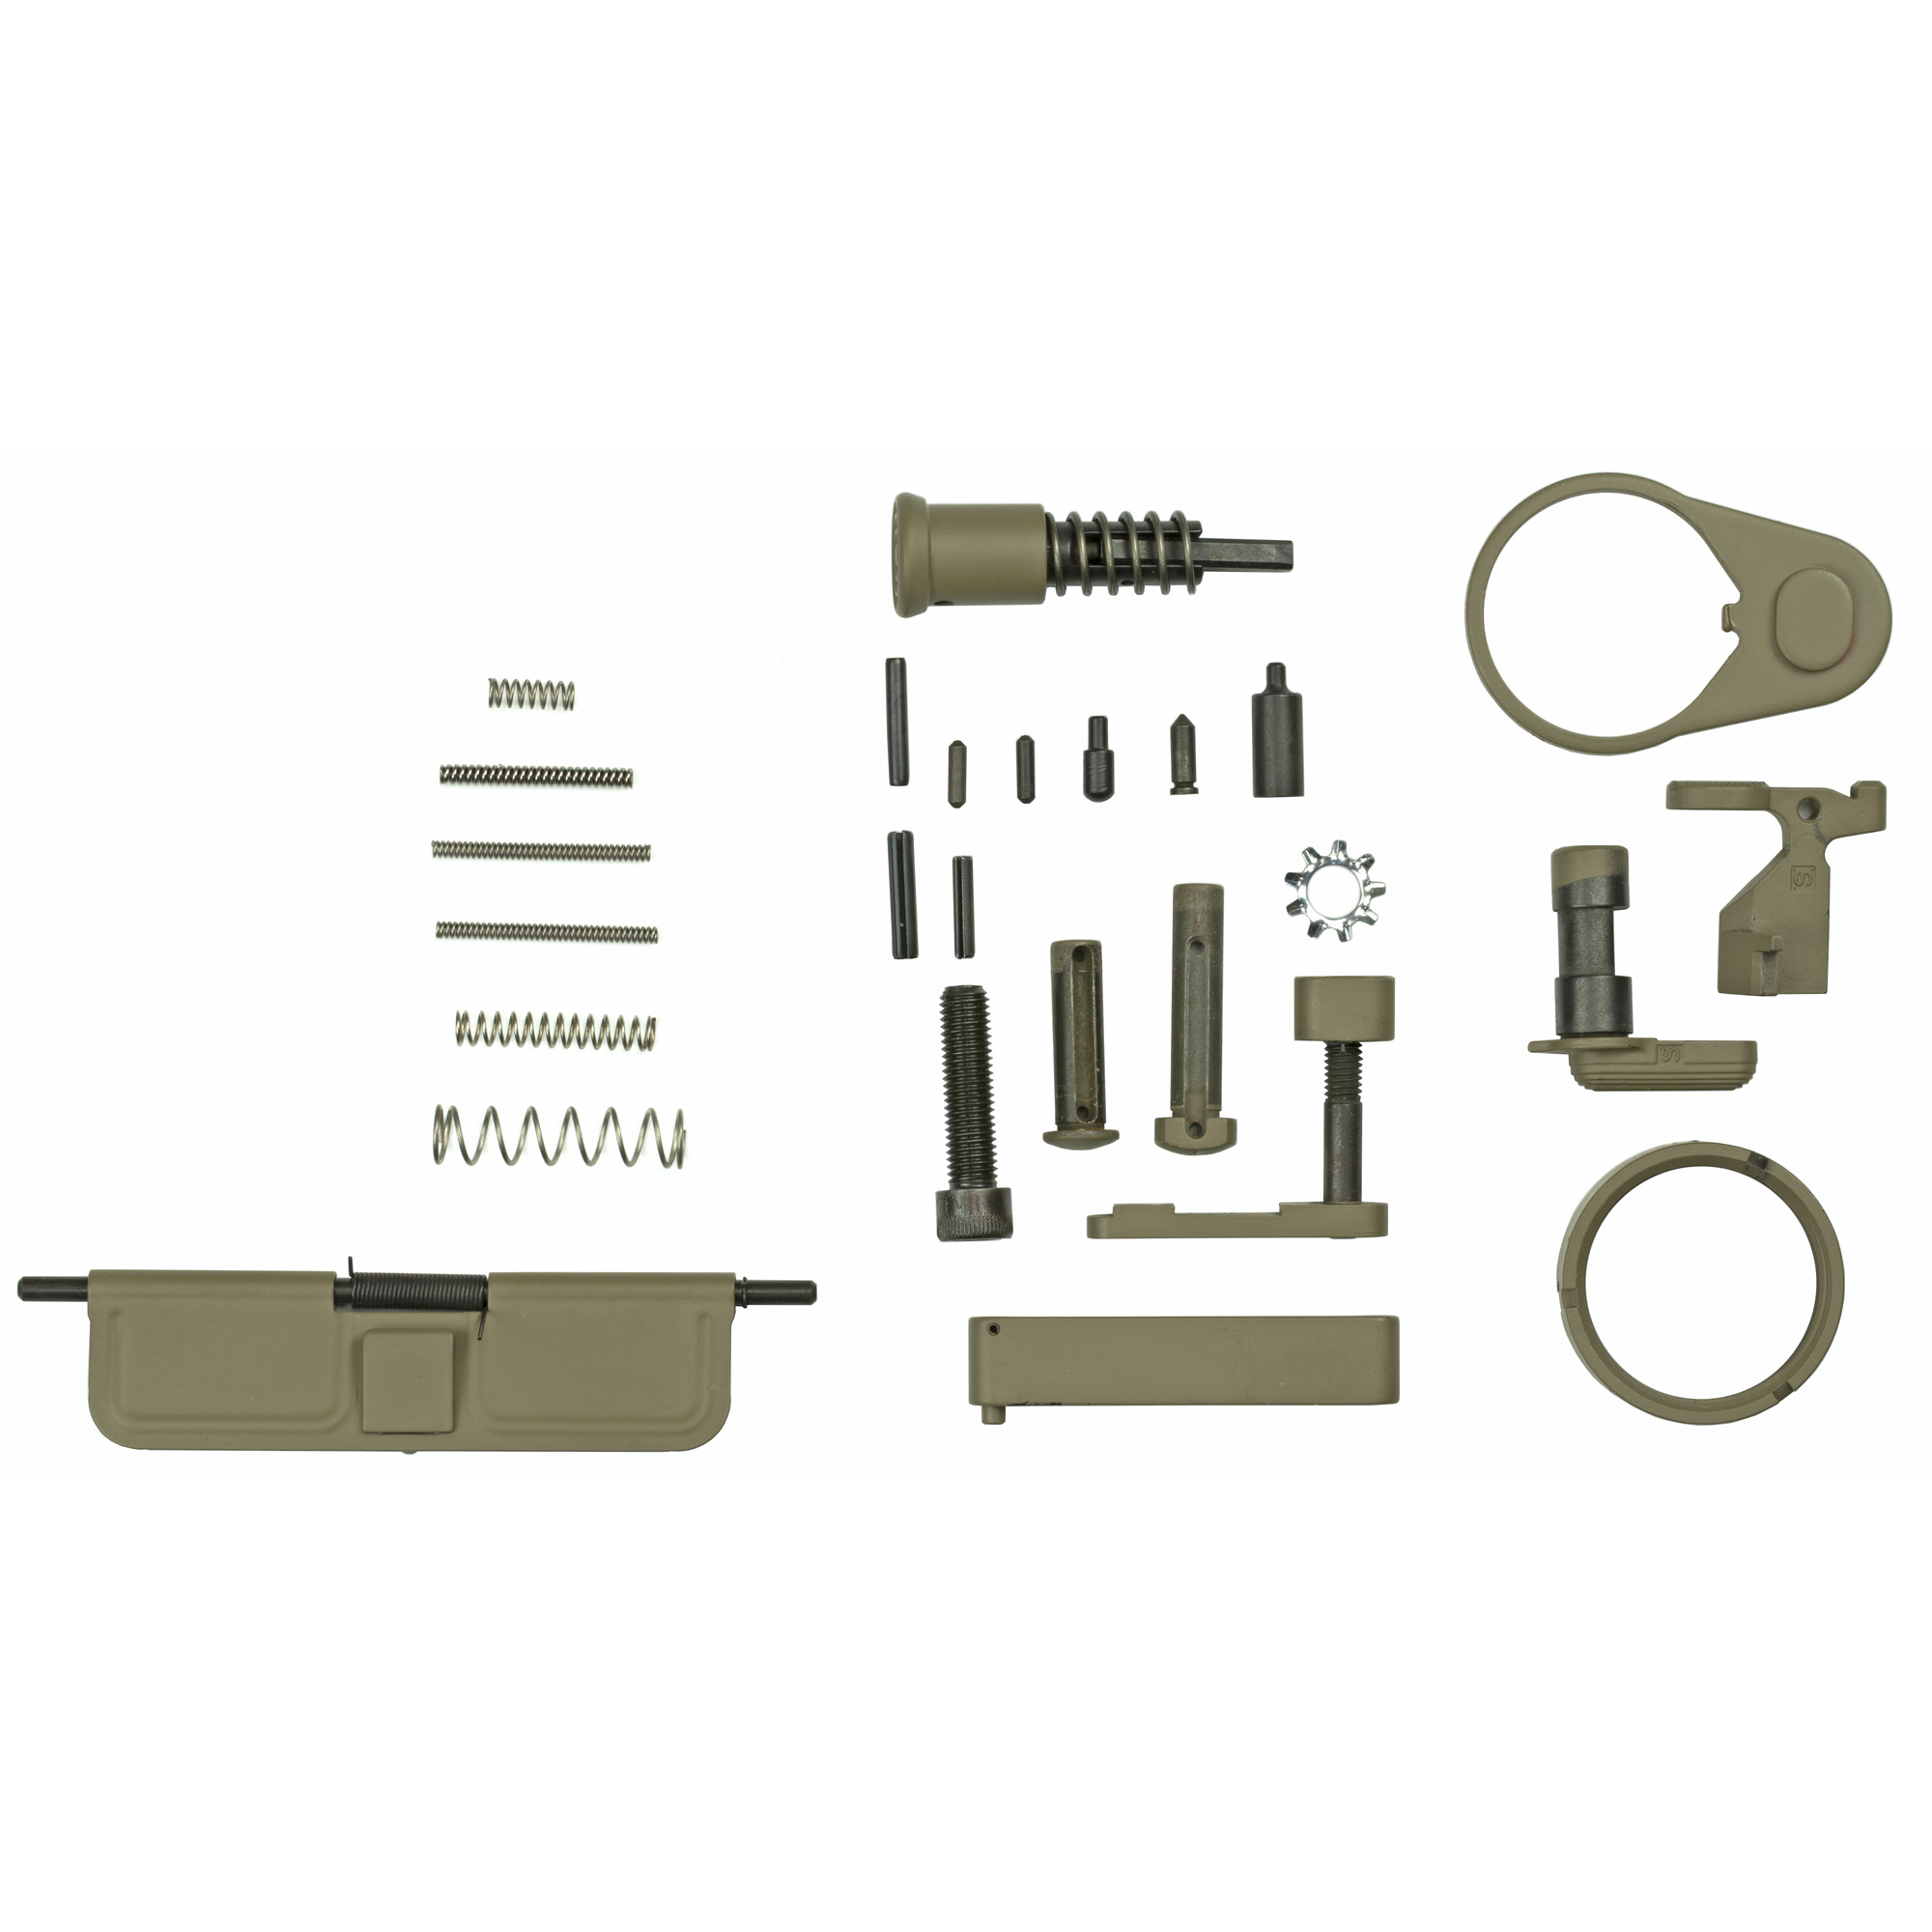 """The color coated parts included are: Ejection Port Cover Door"""" Forward Assist"""" Castle Nut"""" Receiver End Plate"""" Bolt Catch"""" Mag Lever"""" Mag Button"""" Pivot Pin"""" Takedown Pin"""" Trigger Guard"""" Buffer Retainer. Also includes the pins and spring kit for the Lower Controls. *(Does not include any trigger components)."""